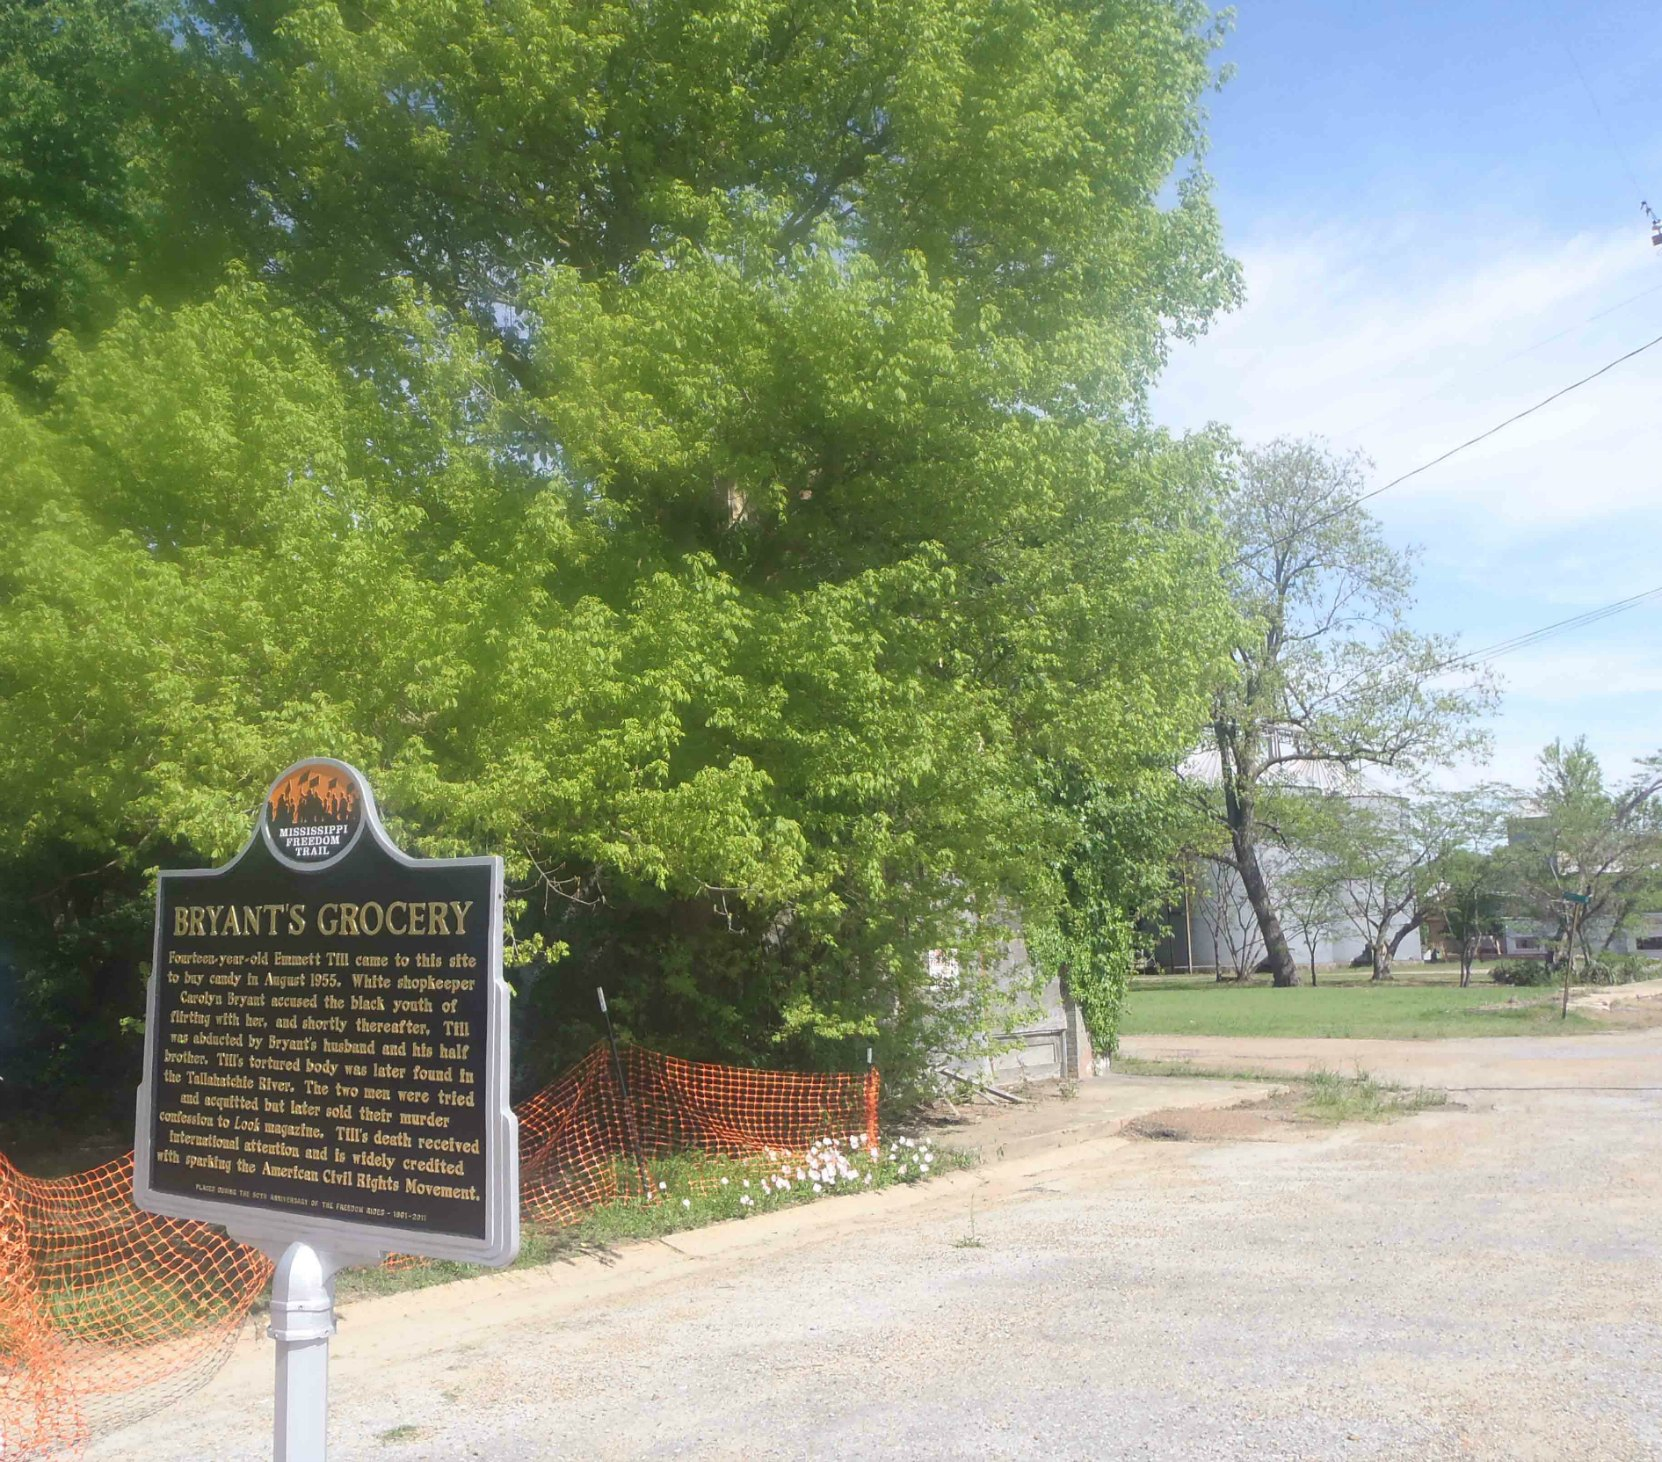 The site of Bryant's Grocery, Money, Leflore County, Mississippi. This ruins of the former Bryant's Grocery building are behind the trees to the rear of the Freedom Trail marker.